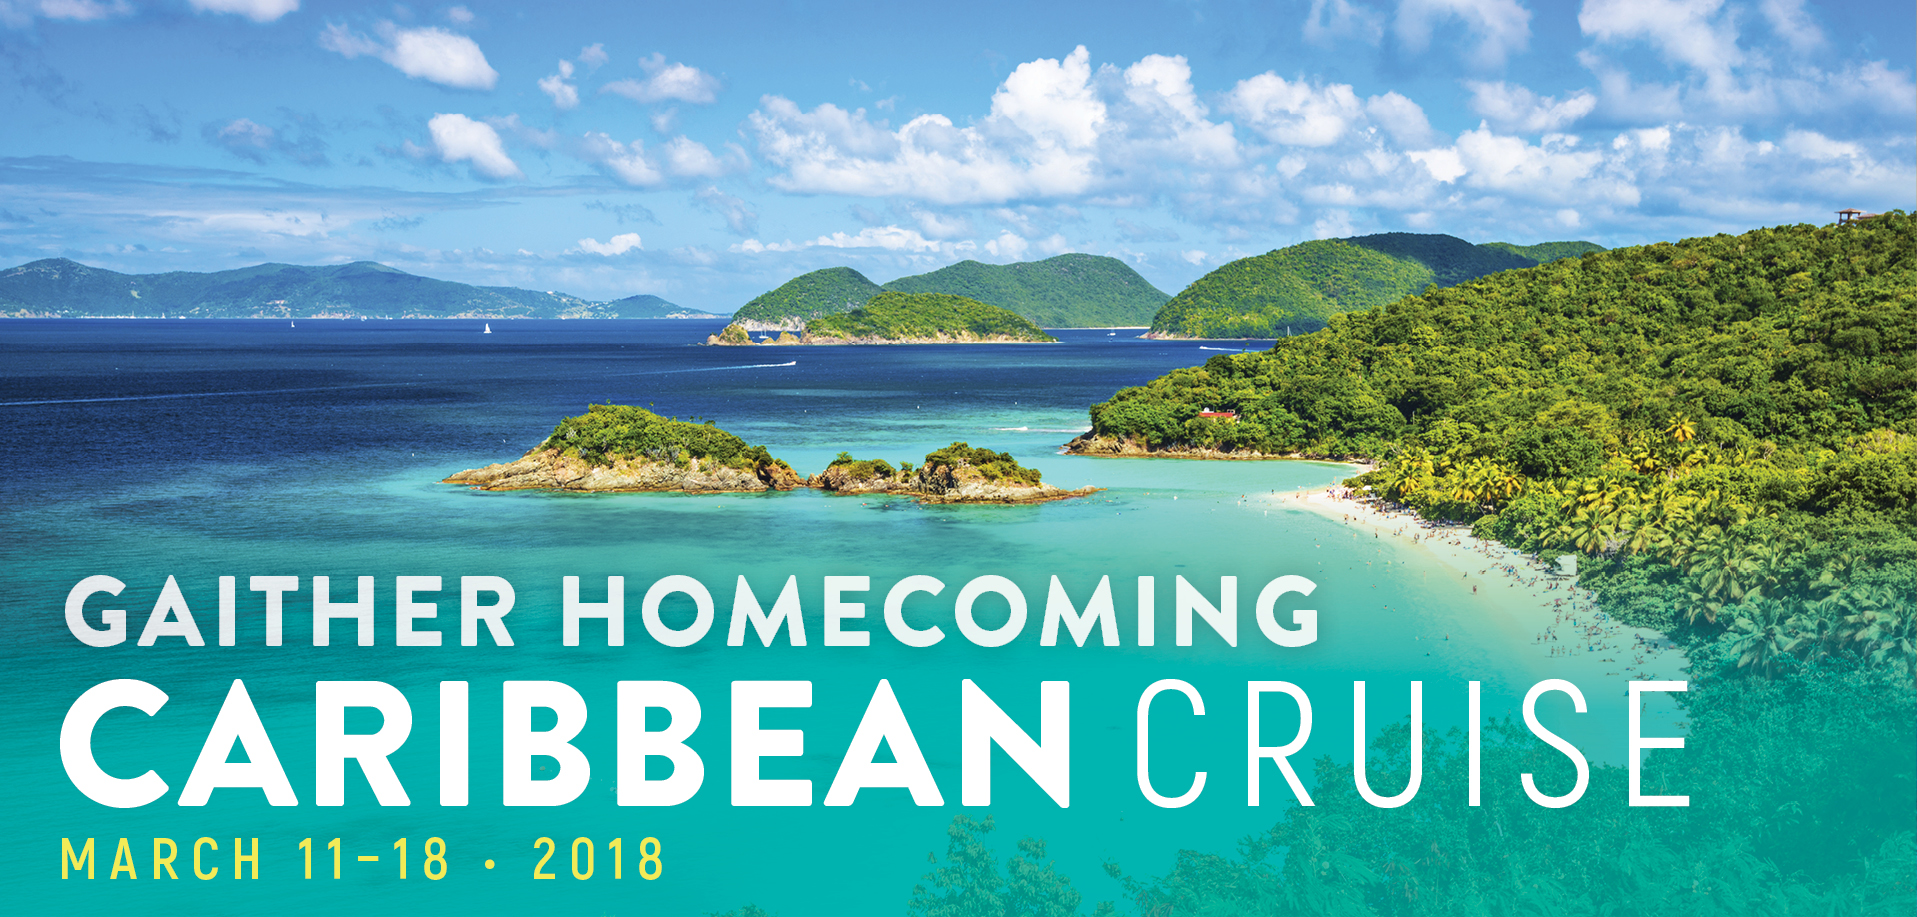 Take a Christian Cruise with Gaither Homecoming & Friends - Caribbean Cruise - March 11-18, 2018